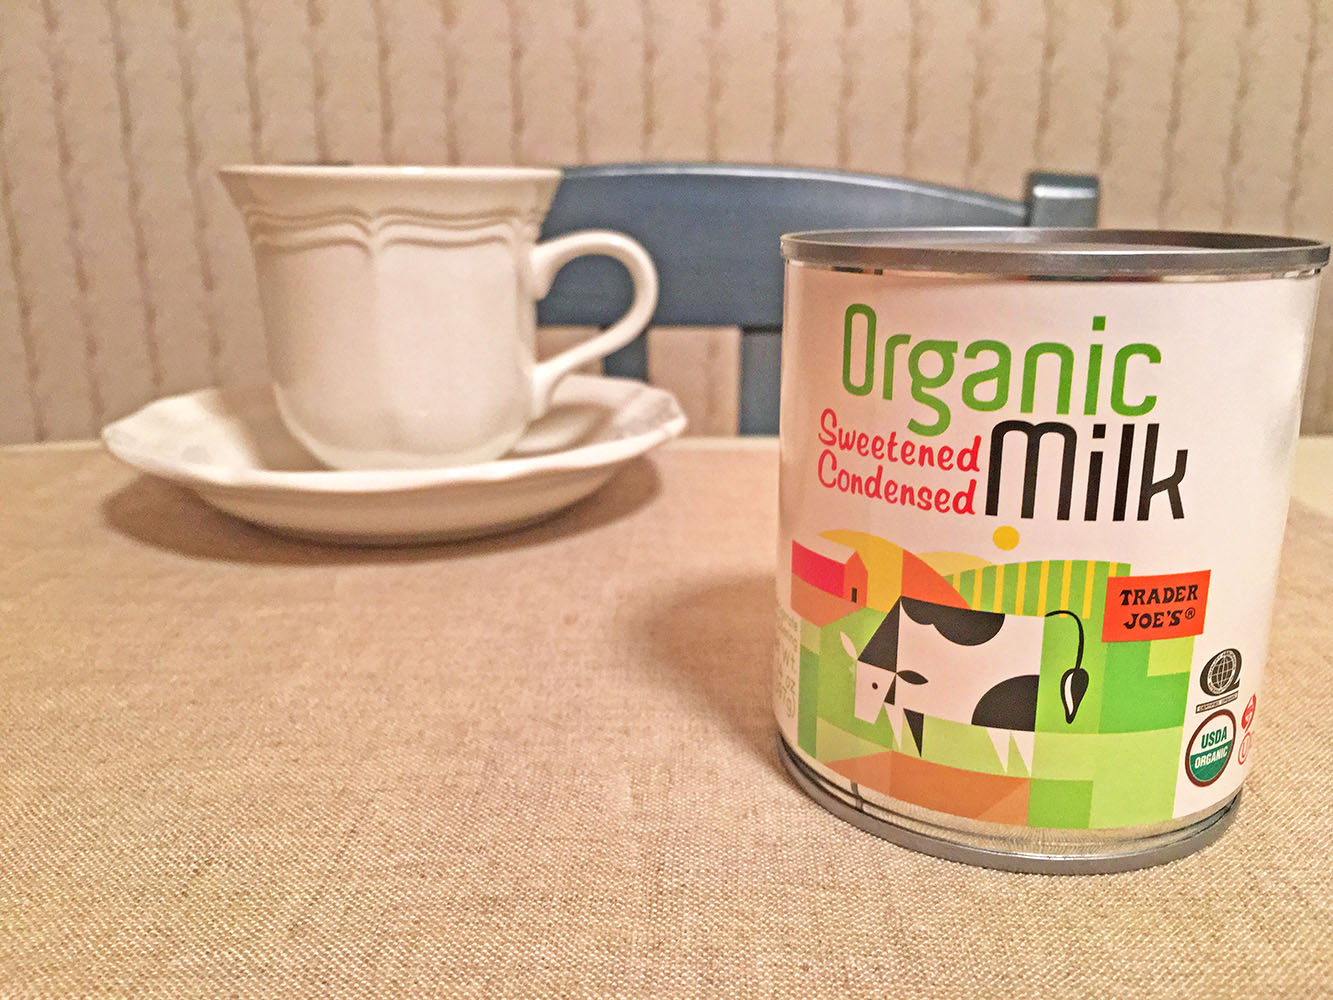 Trader Joe's Organic Sweetened Condensed Milk